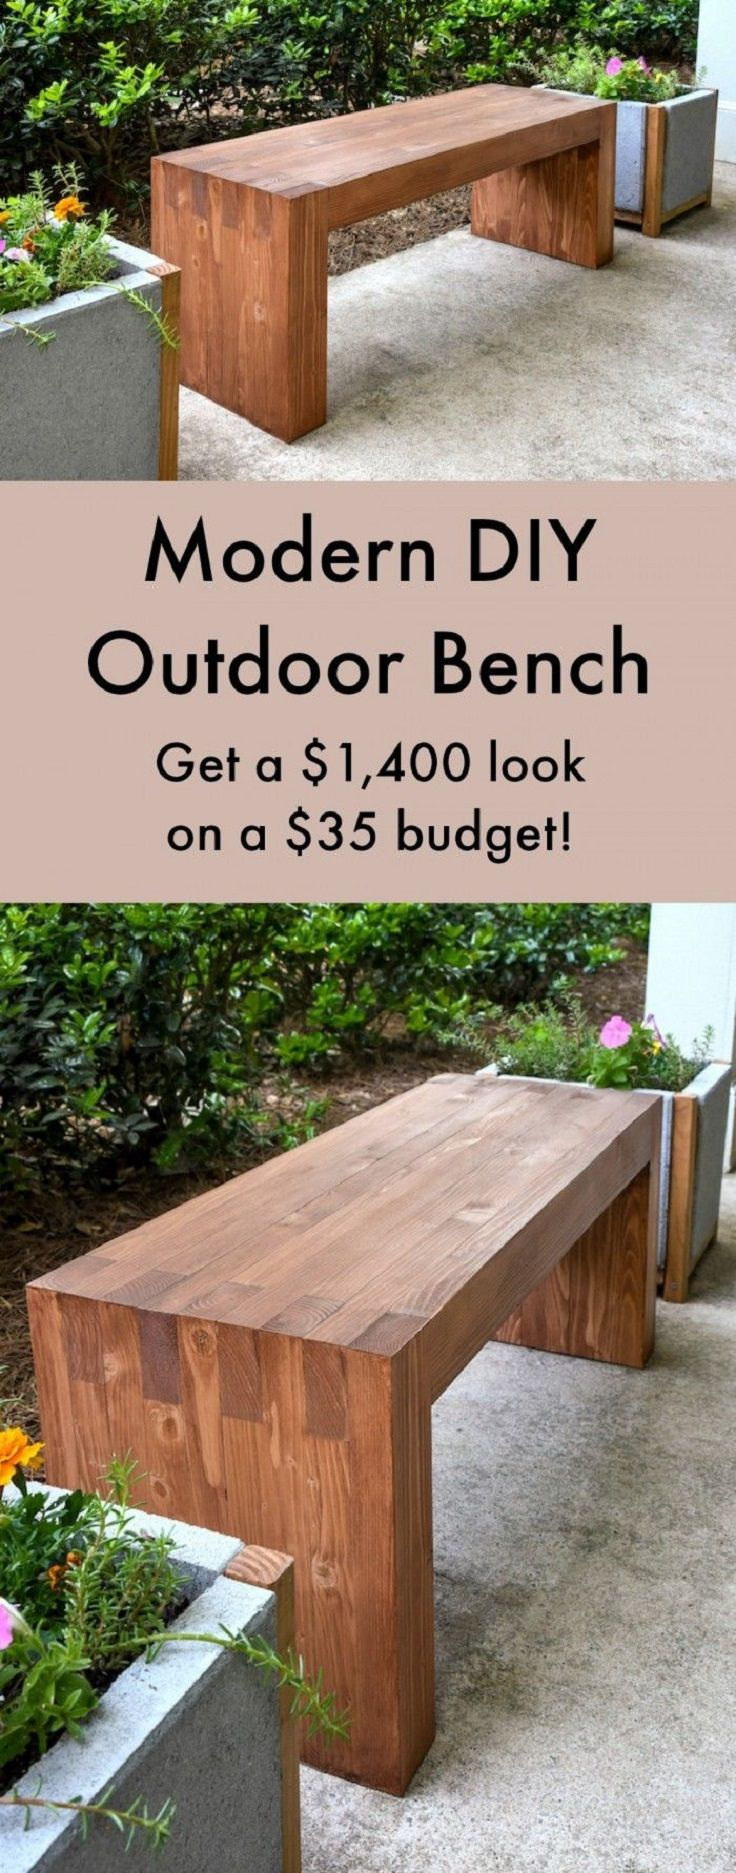 modern diy outdoor bench 15 practical diy woodworking ideas for your home